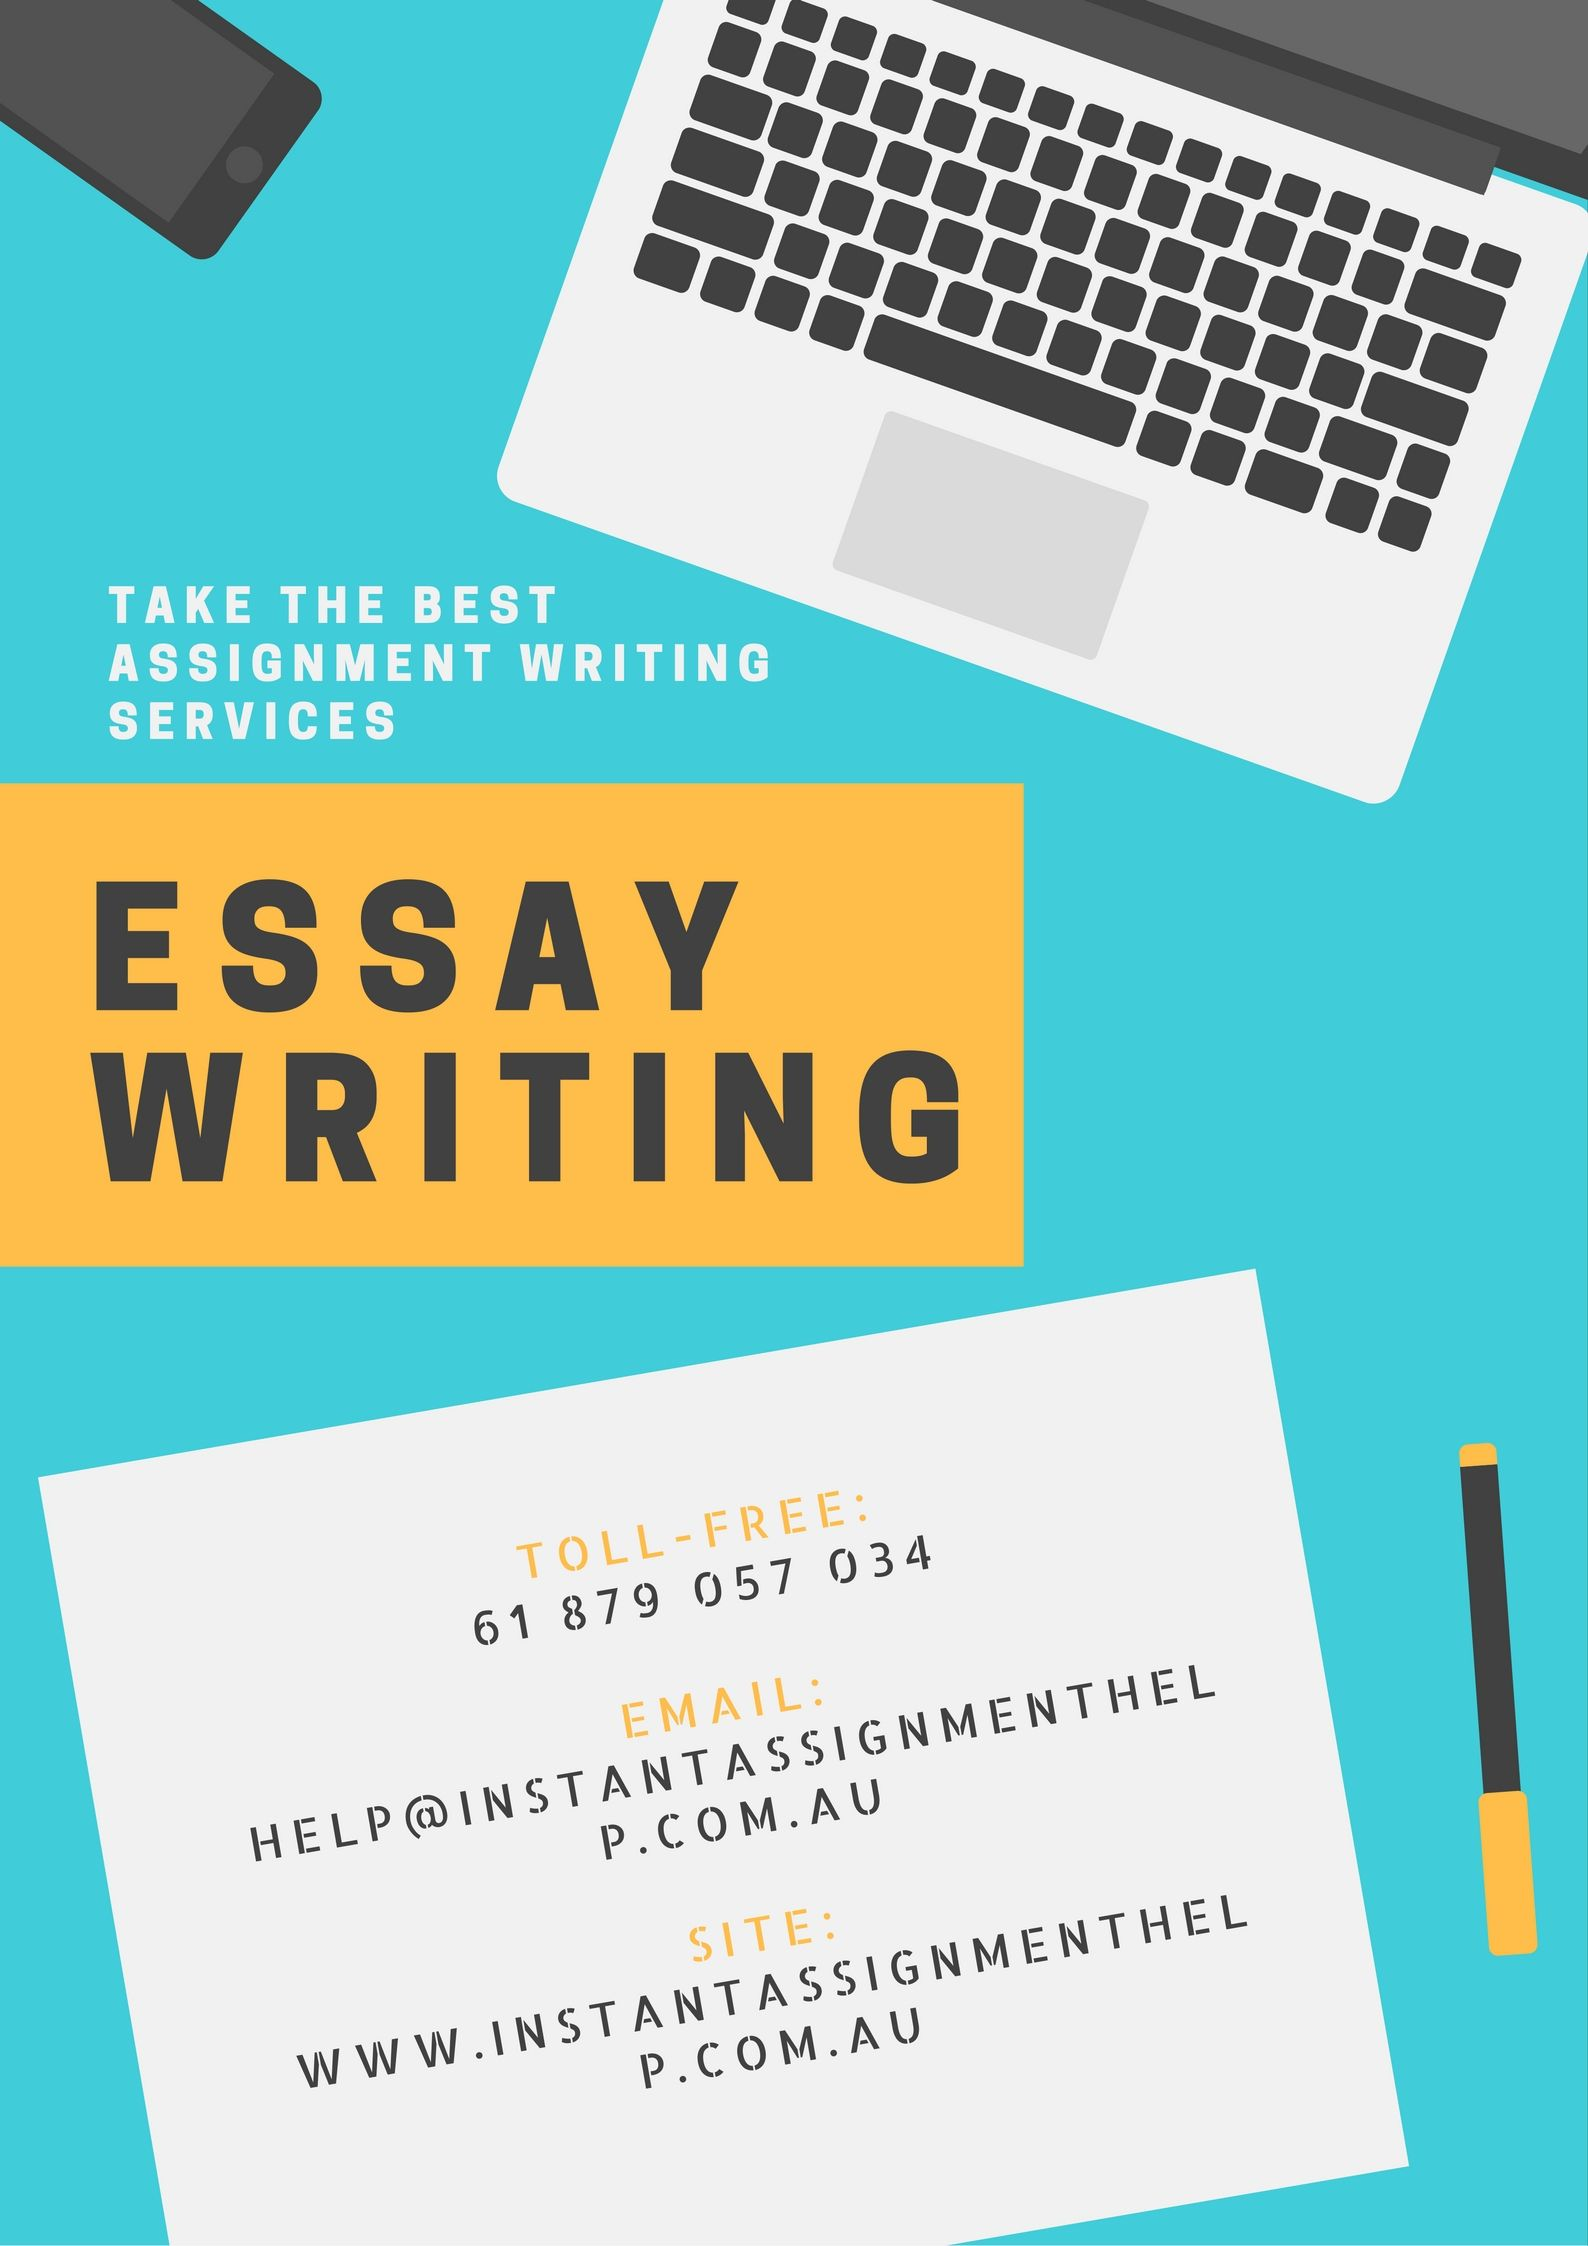 004 Essay Writing Help Example Frightening For Middle School Students High Helper Free Full